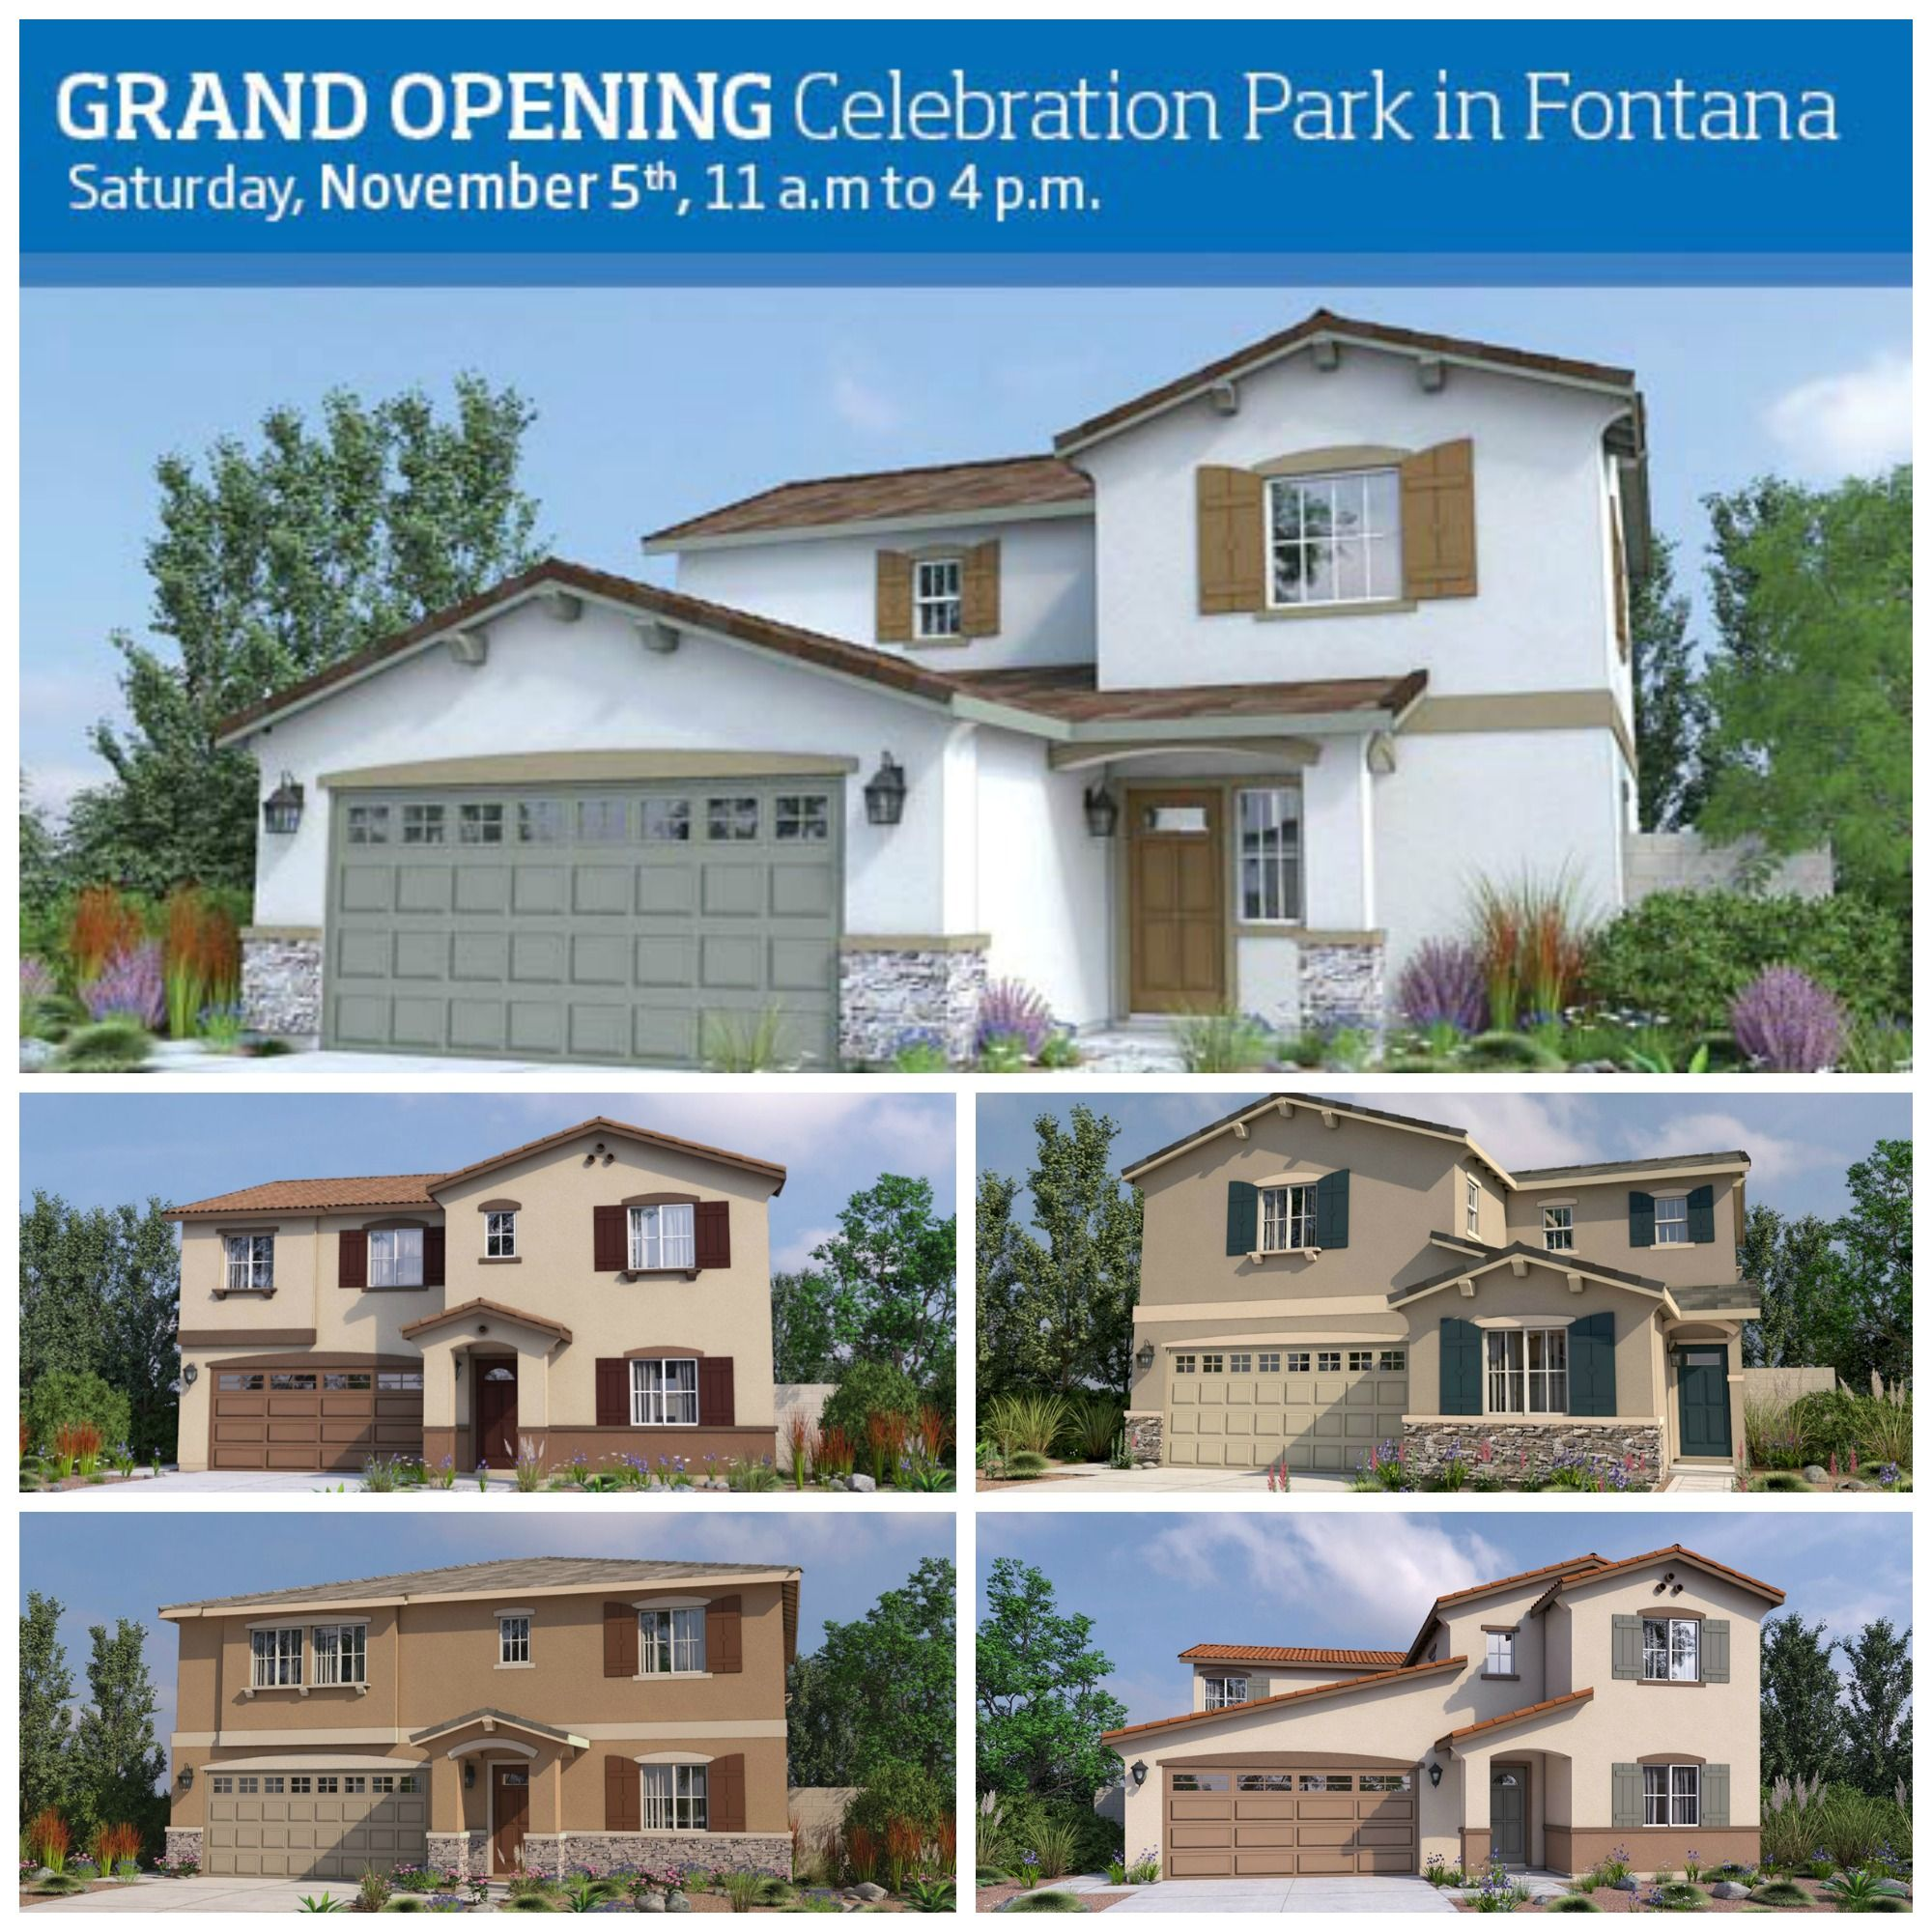 Save the Date for the Grand Opening of Celebration Park in Fontana